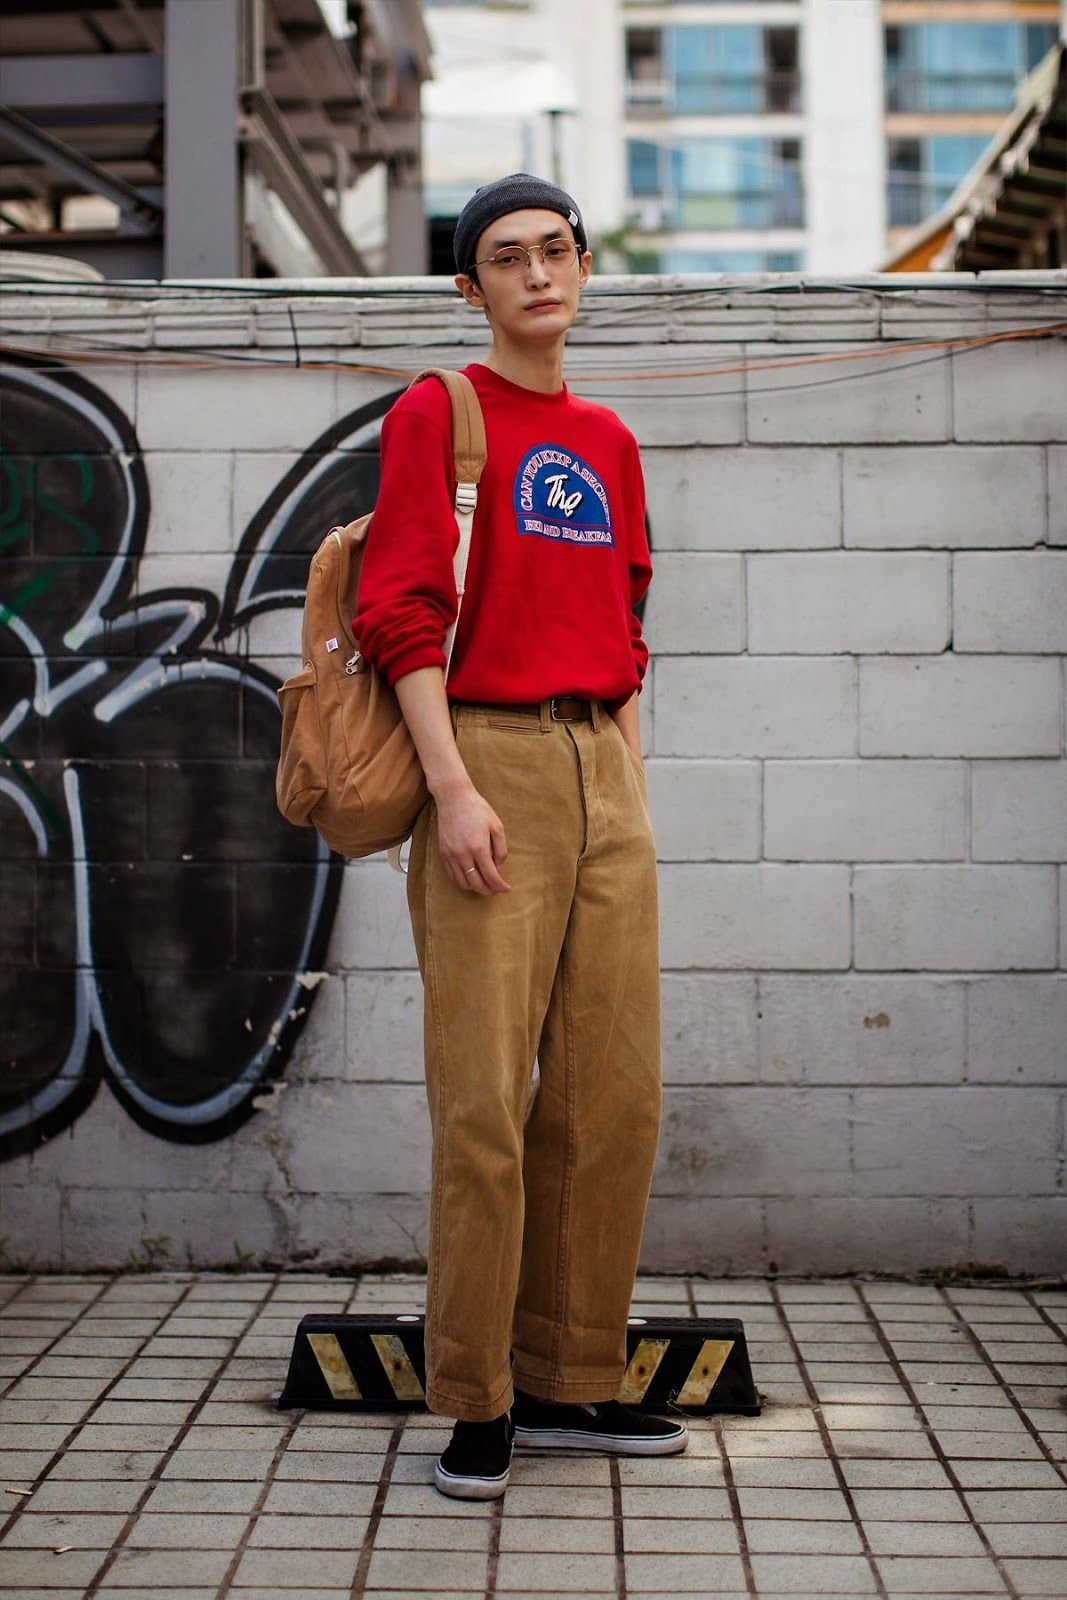 On the street... Jaehyuk Heo Seoul | echeveau